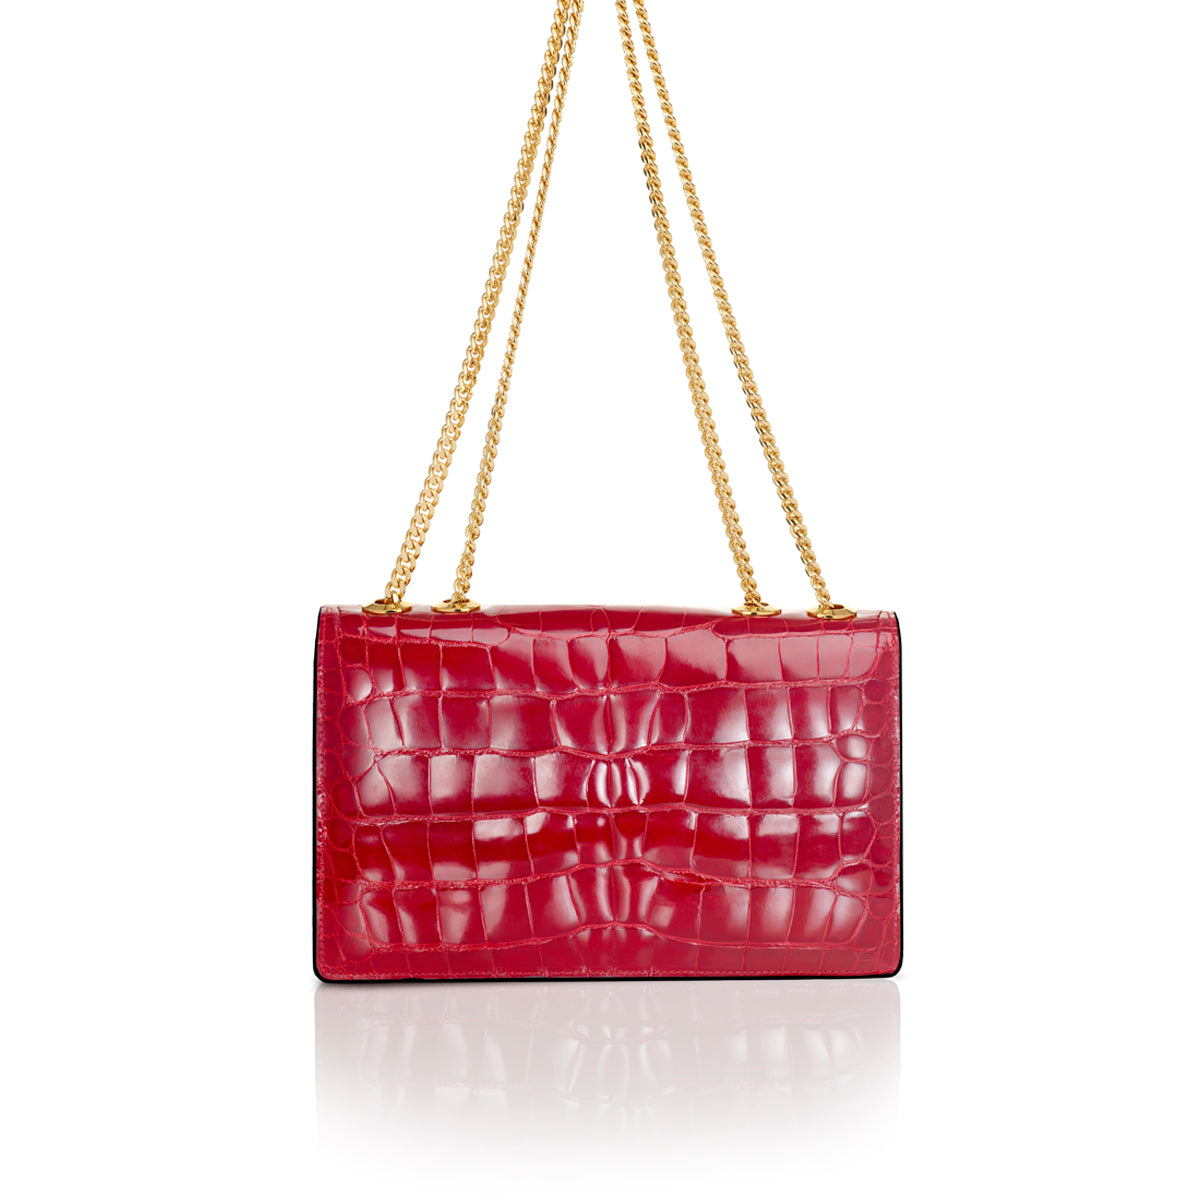 Shoulder Bag 2.5 Small - Cerise Alligator